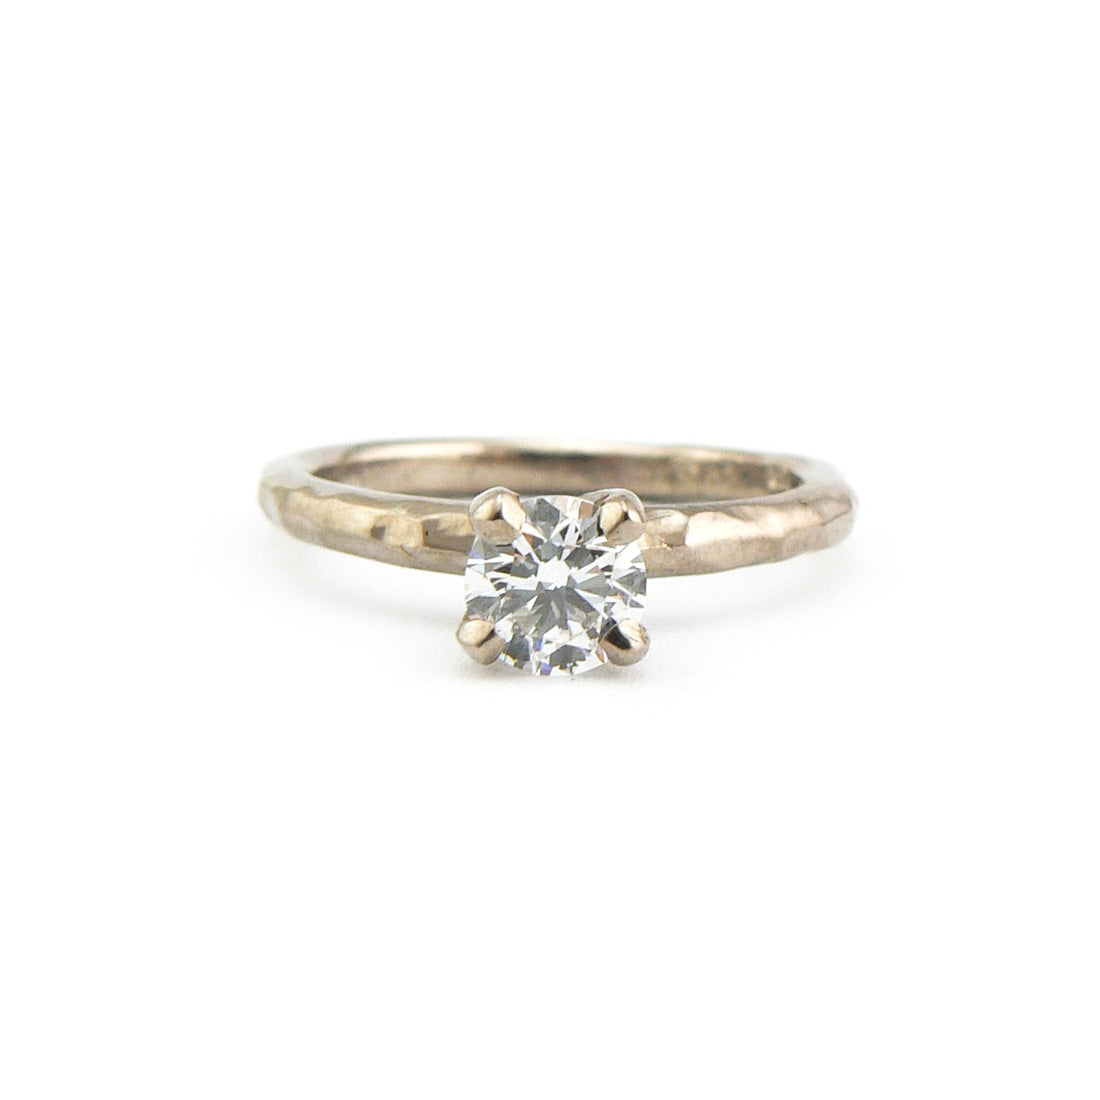 Diamond Solitaire Ring Bespoke Handmade